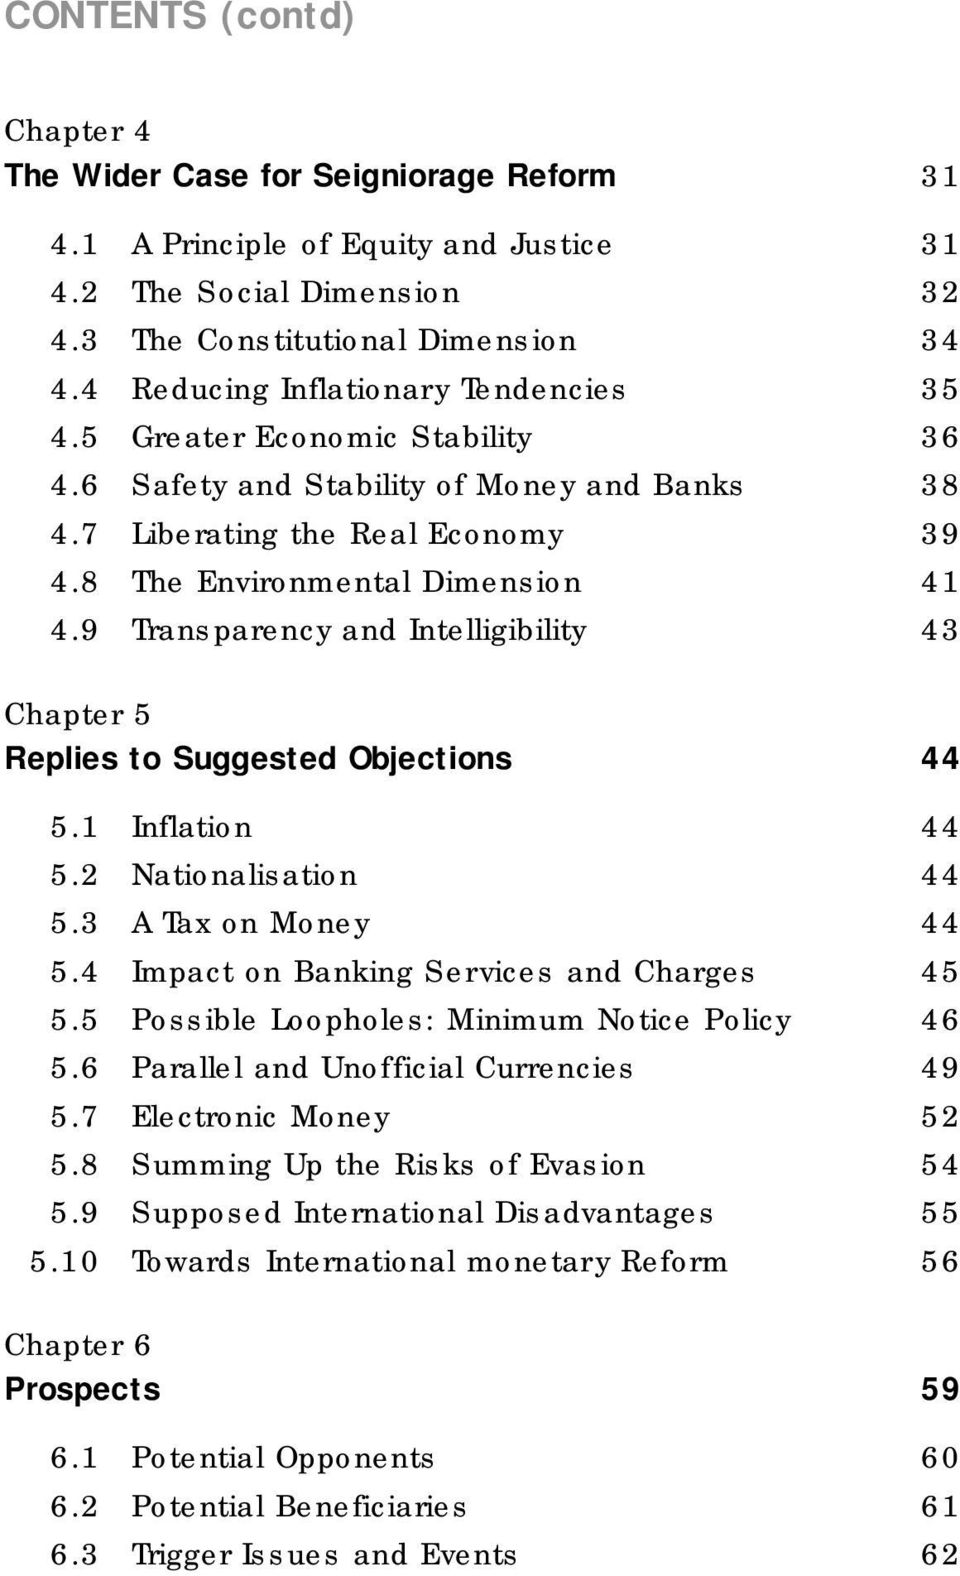 9 Transparency and Intelligibility 43 Chapter 5 Replies to Suggested Objections 44 5.1 Inflation 44 5.2 Nationalisation 44 5.3 A Tax on Money 44 5.4 Impact on Banking Services and Charges 45 5.